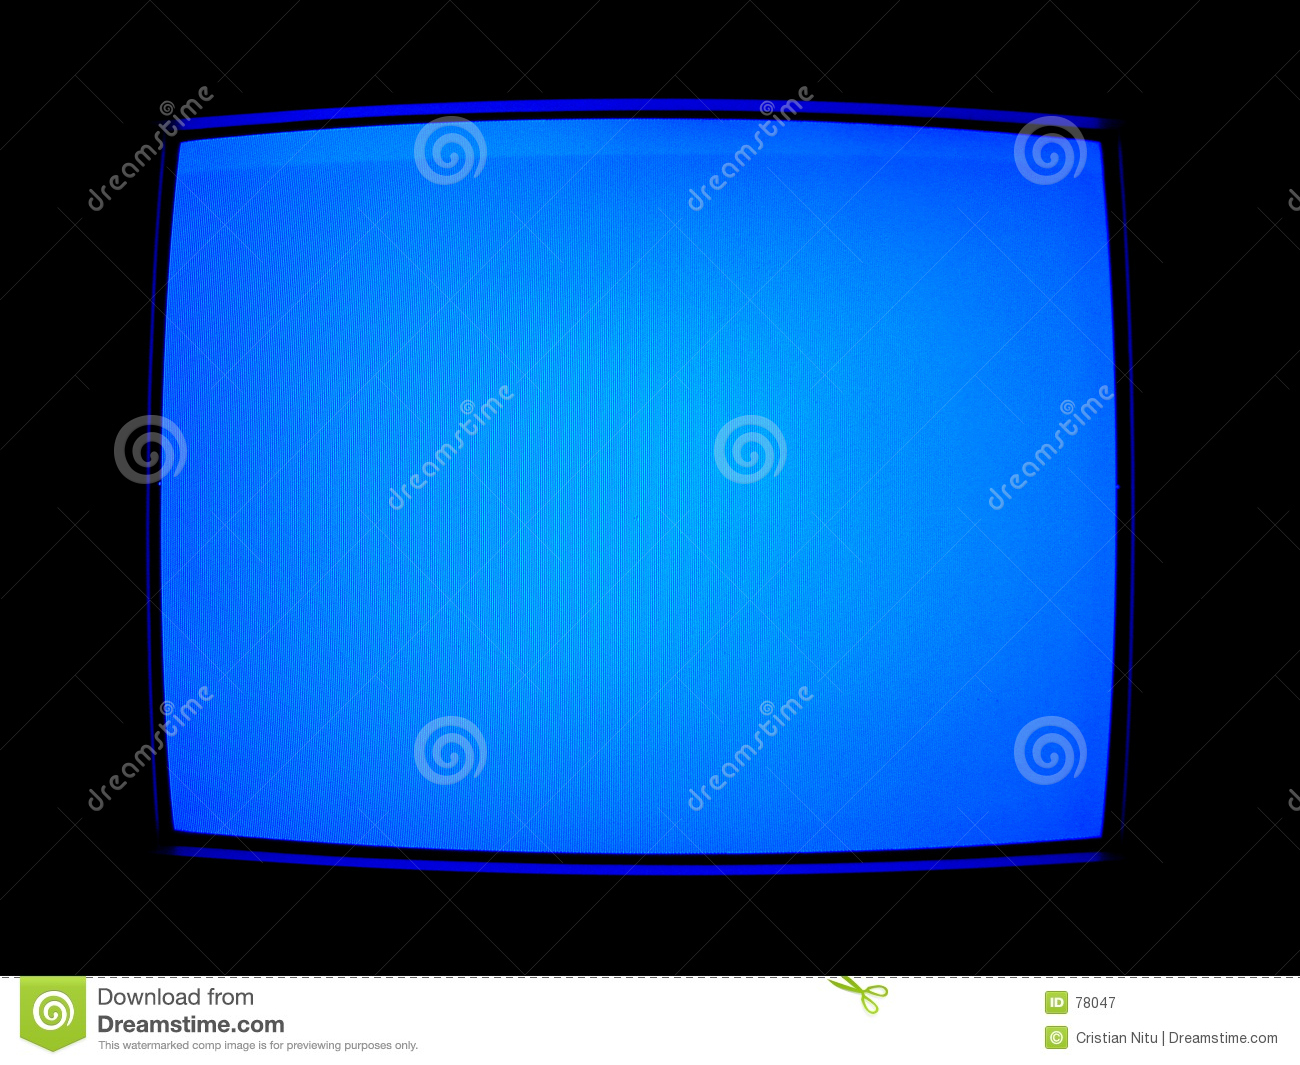 blue tv screen royalty free stock photography